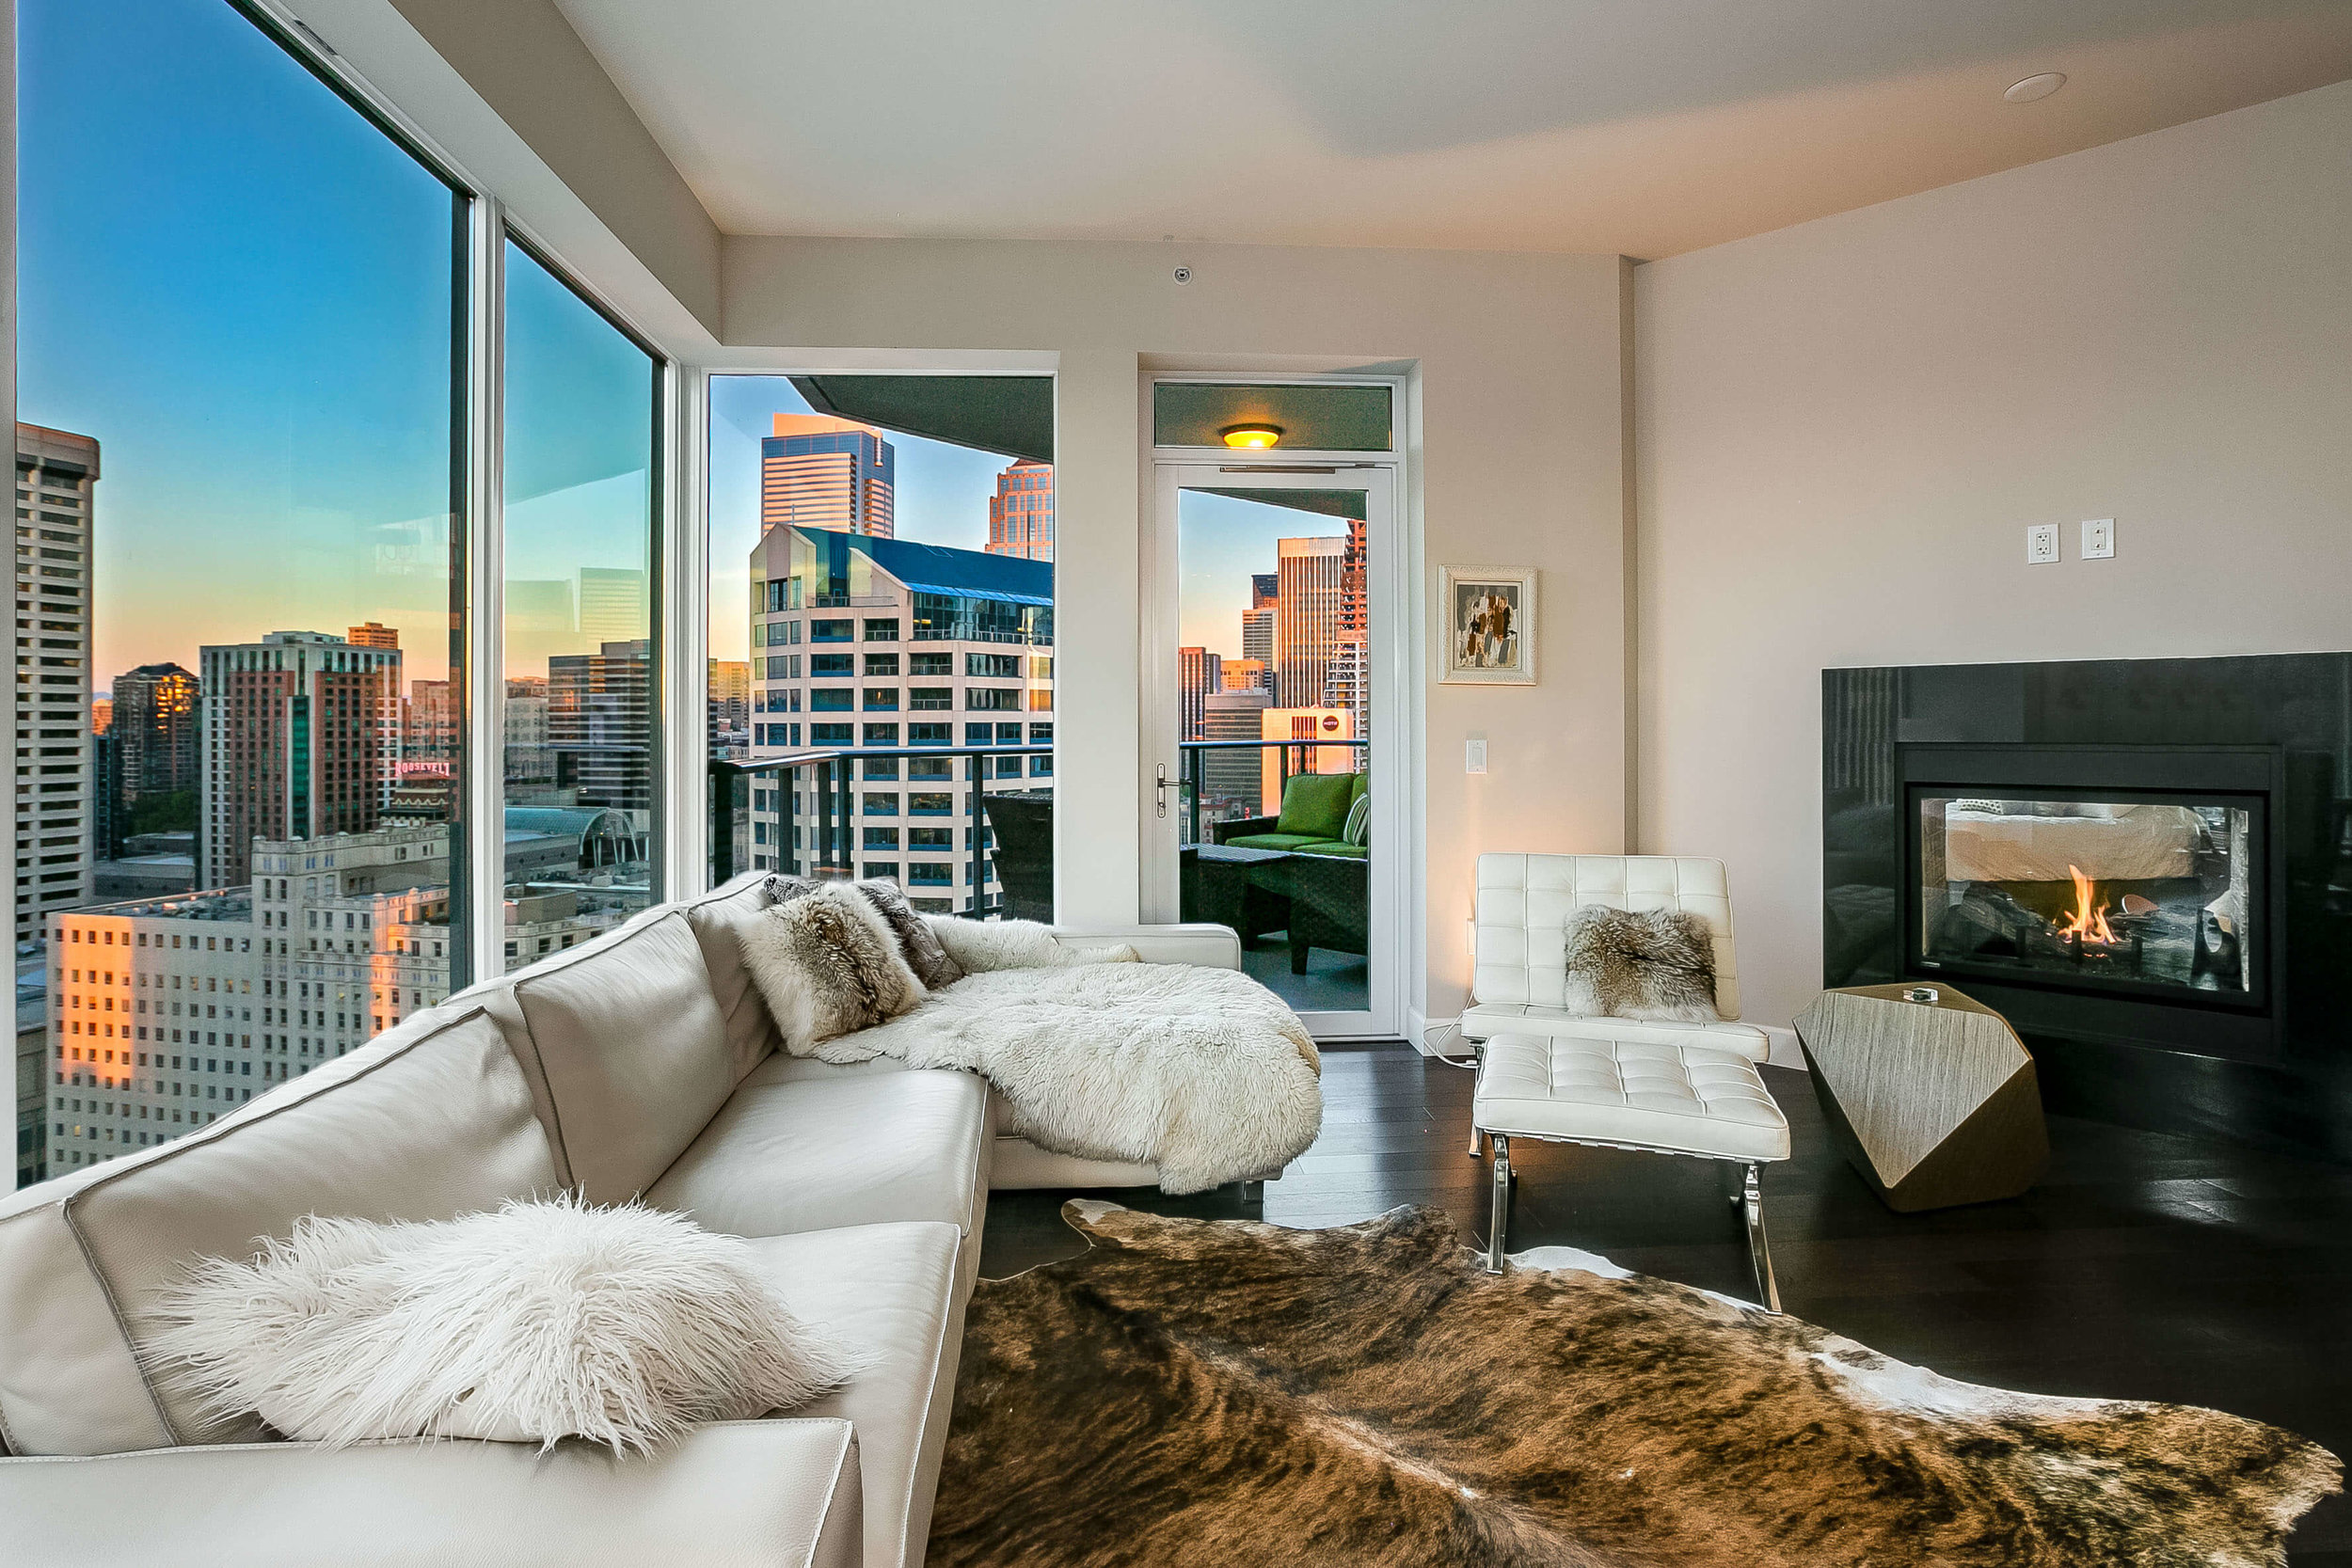 ESCALA #2406 - 2 Bedrooms, 2 Bathrooms, 1,607 Square Feet2 Parking SpacesOffered at $1,375,000